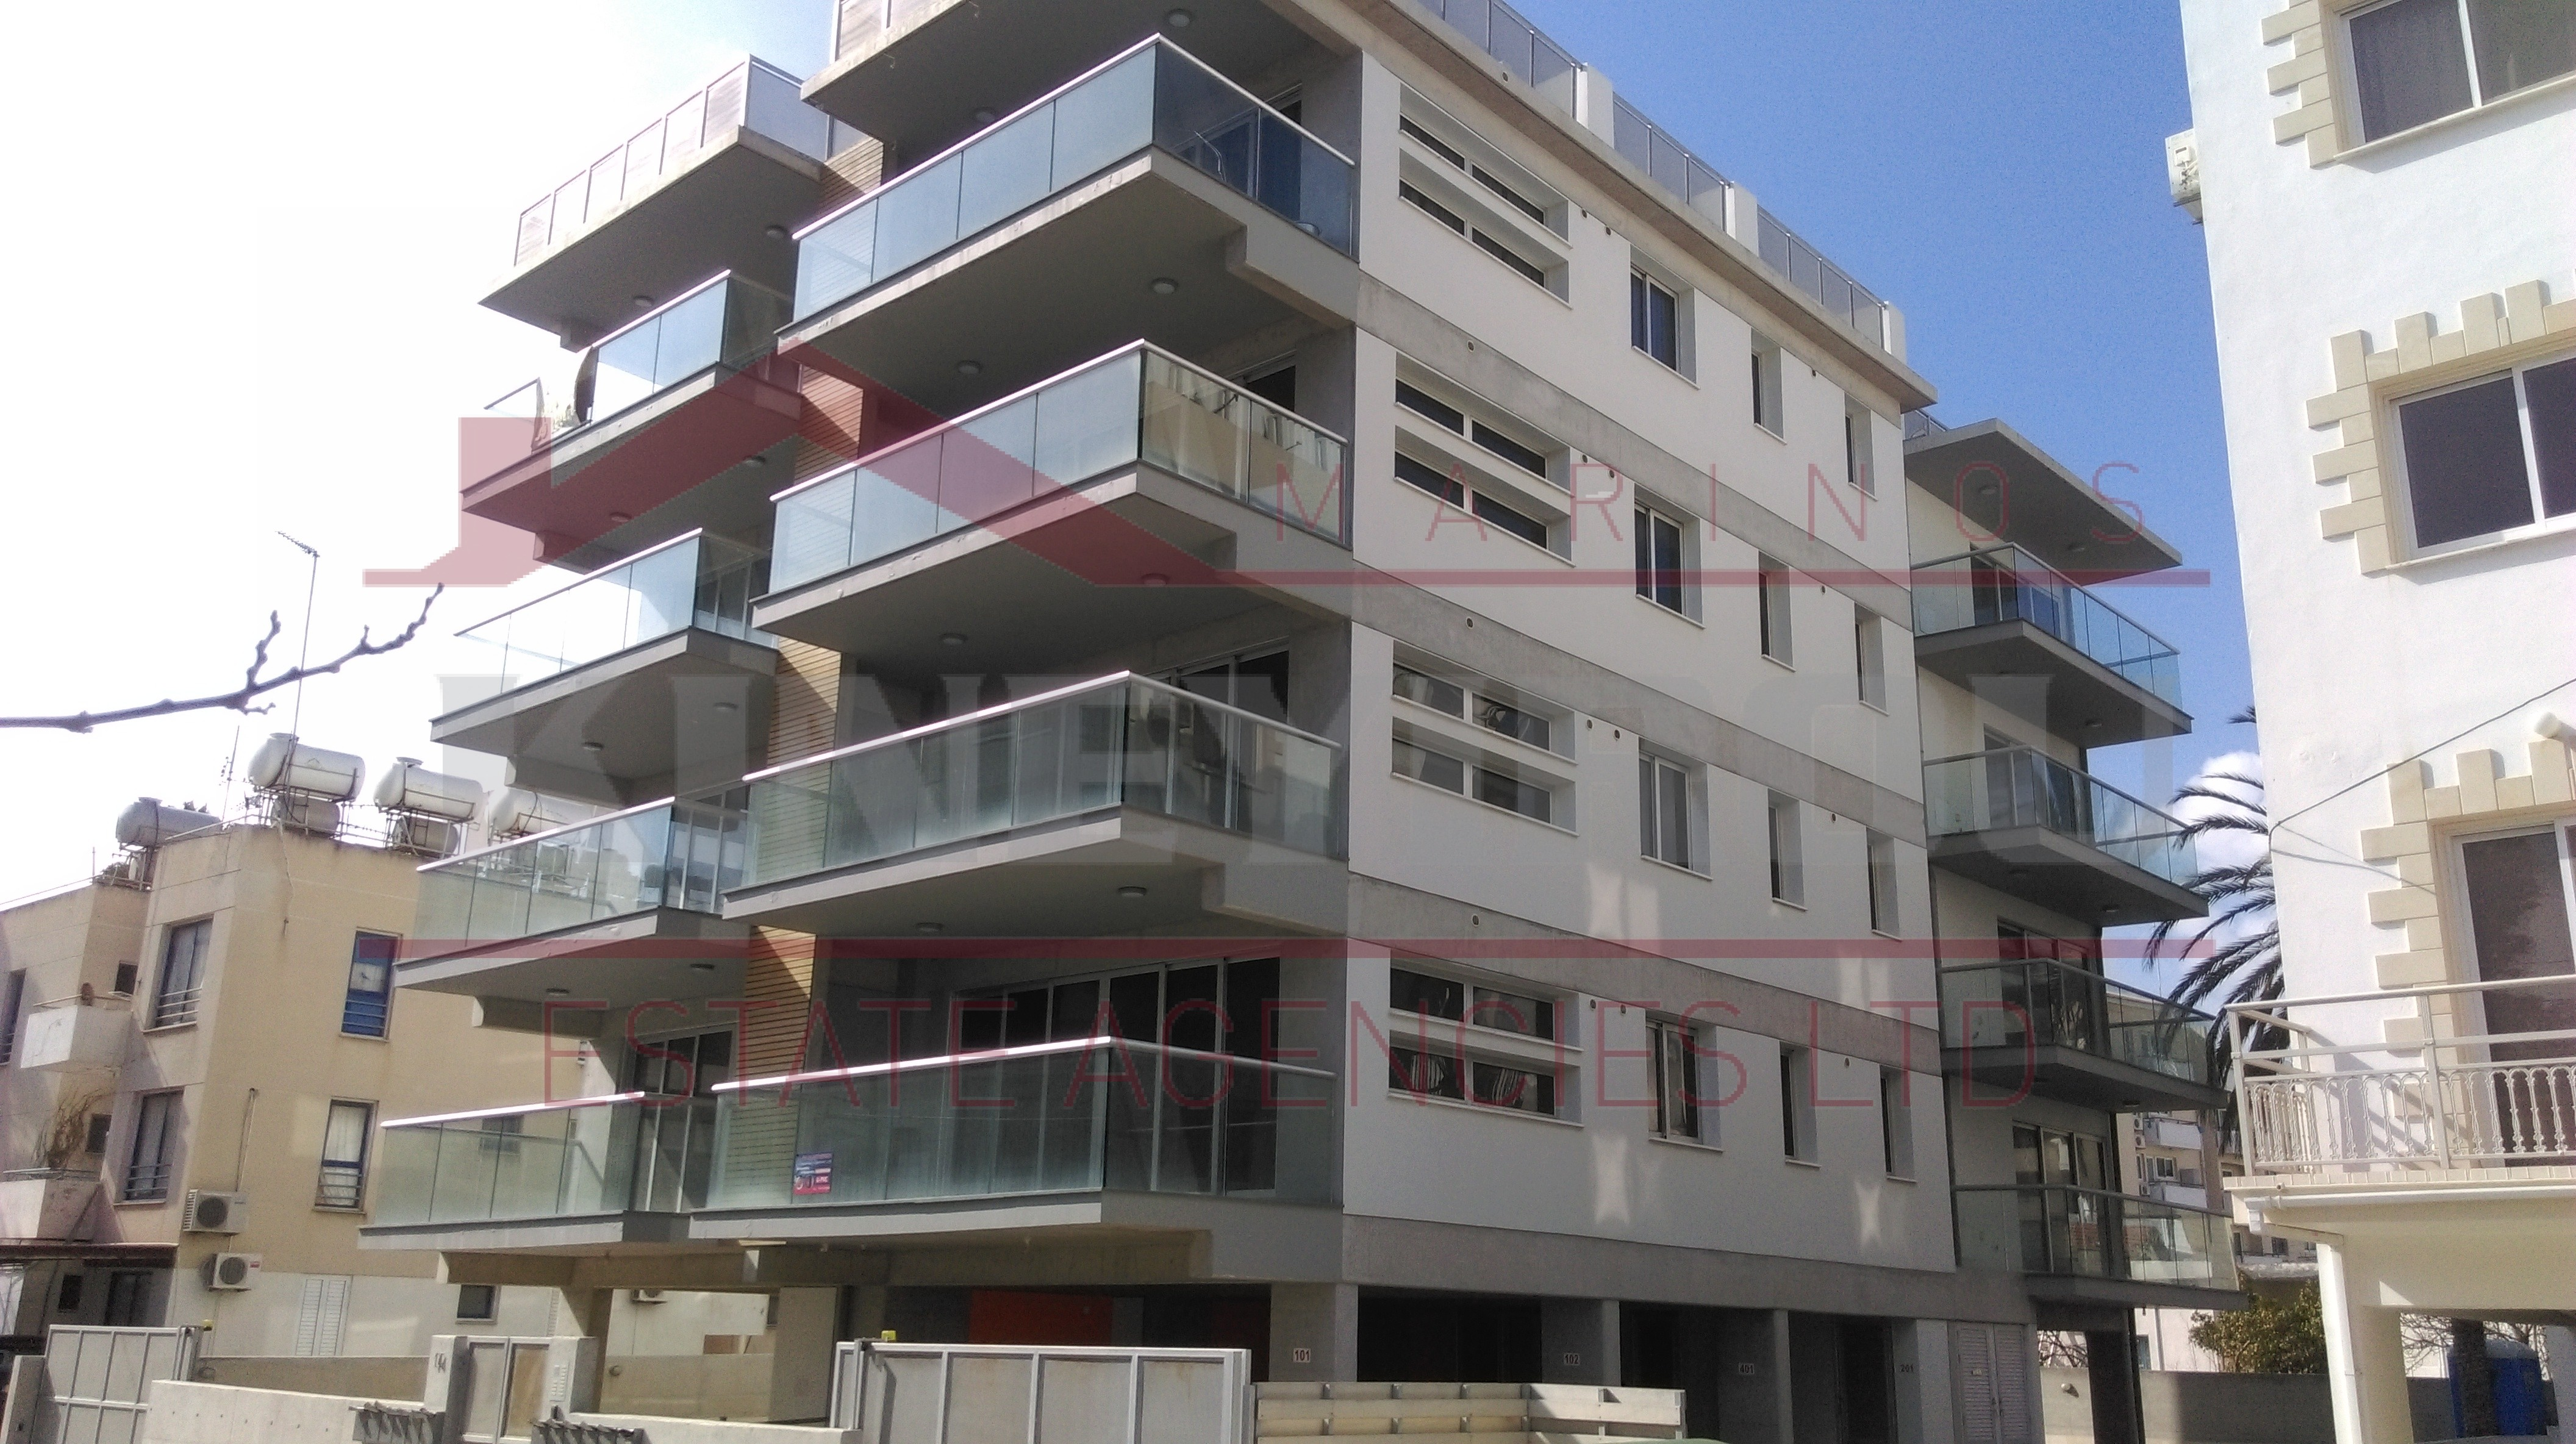 Property in Cyprus , Building in Makenzy, Larnaca